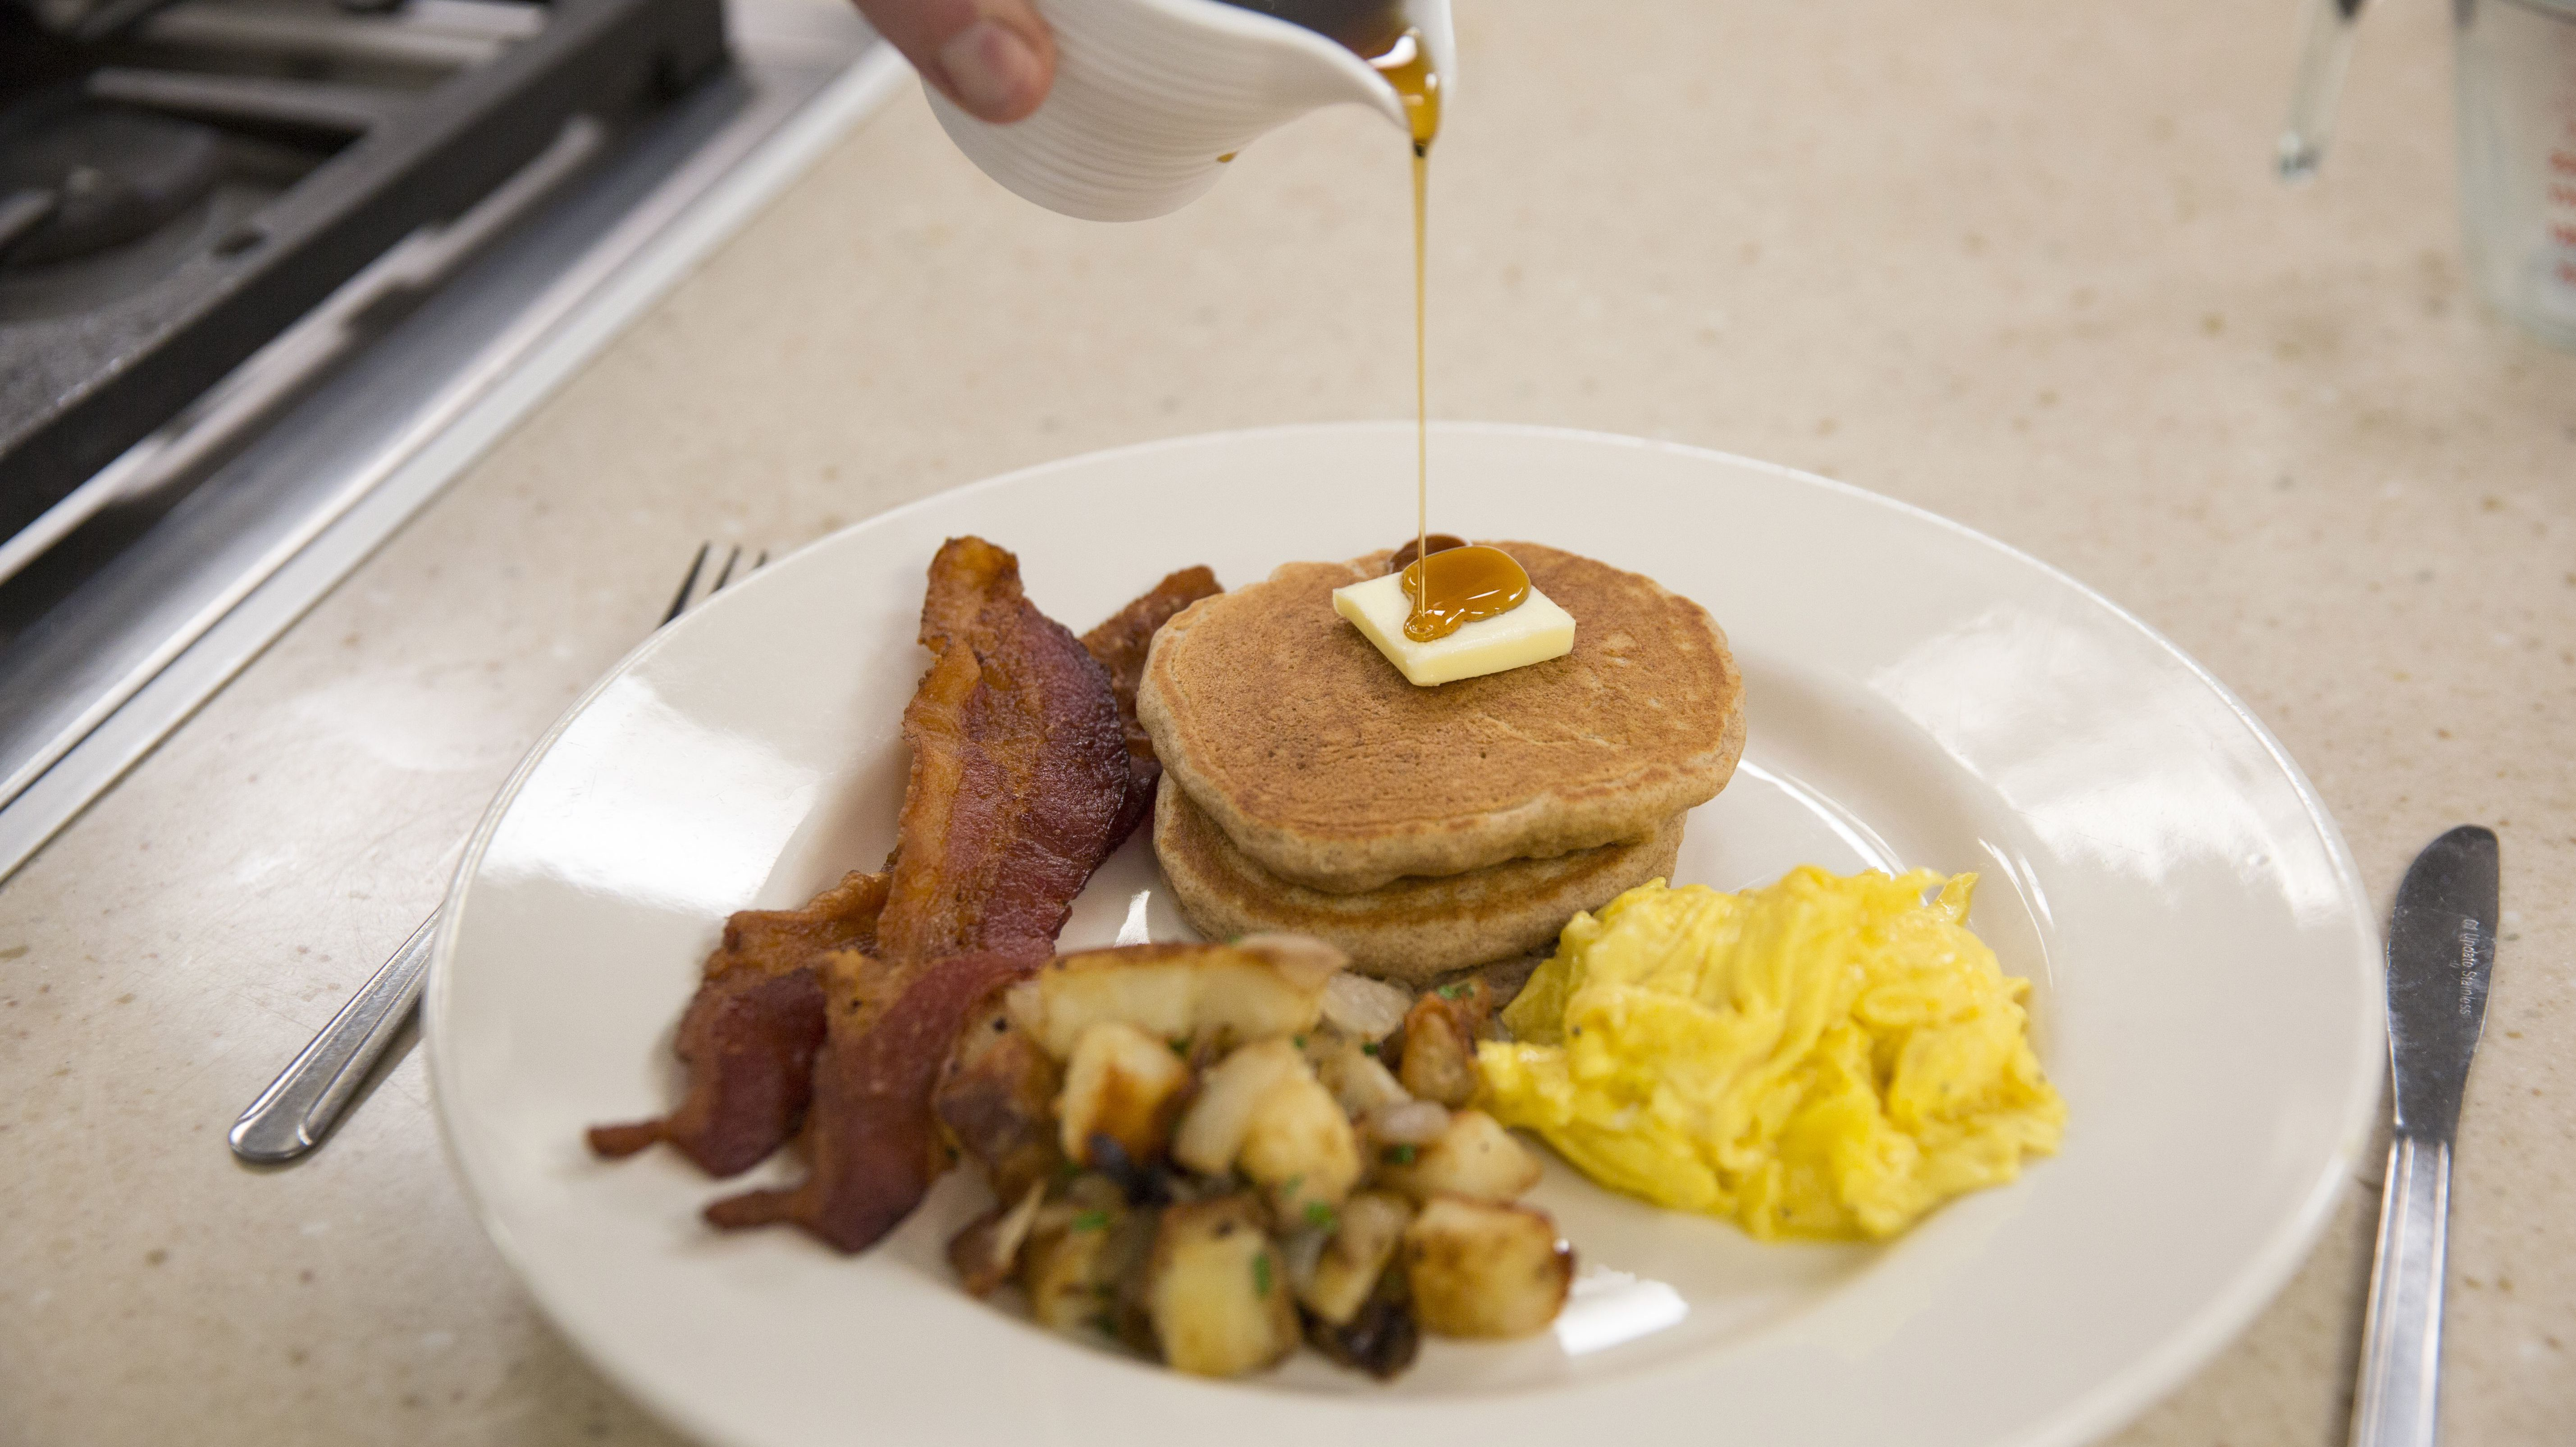 February 17, 2016 | Brookline, MA A look inside America's Test Kitchen with Dan Souza who teaches us how to make the perfect American breakfast. Kieran Kesner for Quartz.